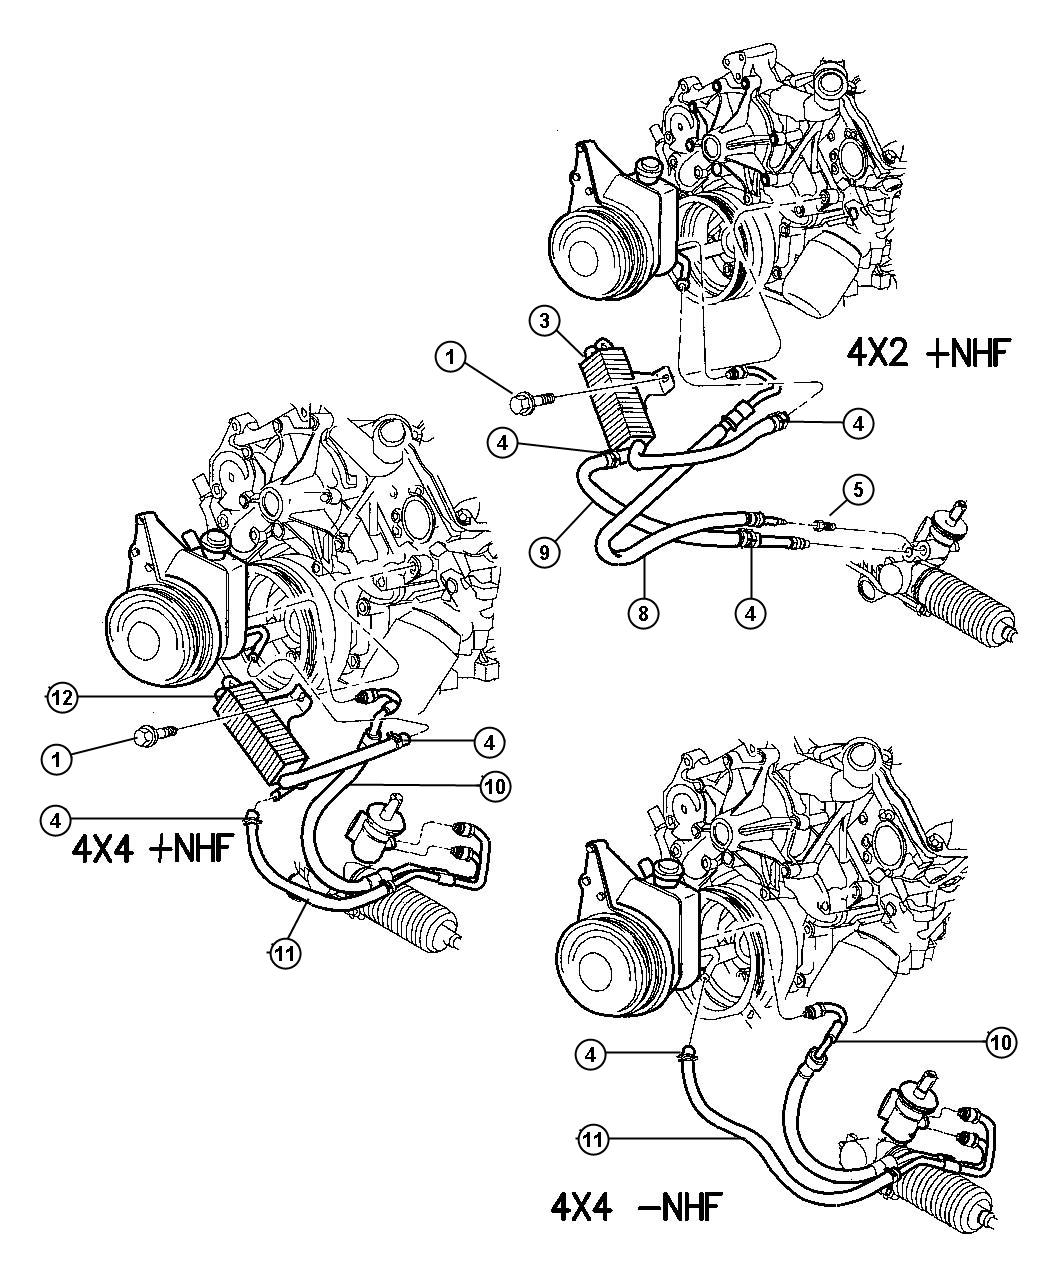 89 Dodge 3 9 Engine Diagram on 1990 ford f 150 fuel pump relay location